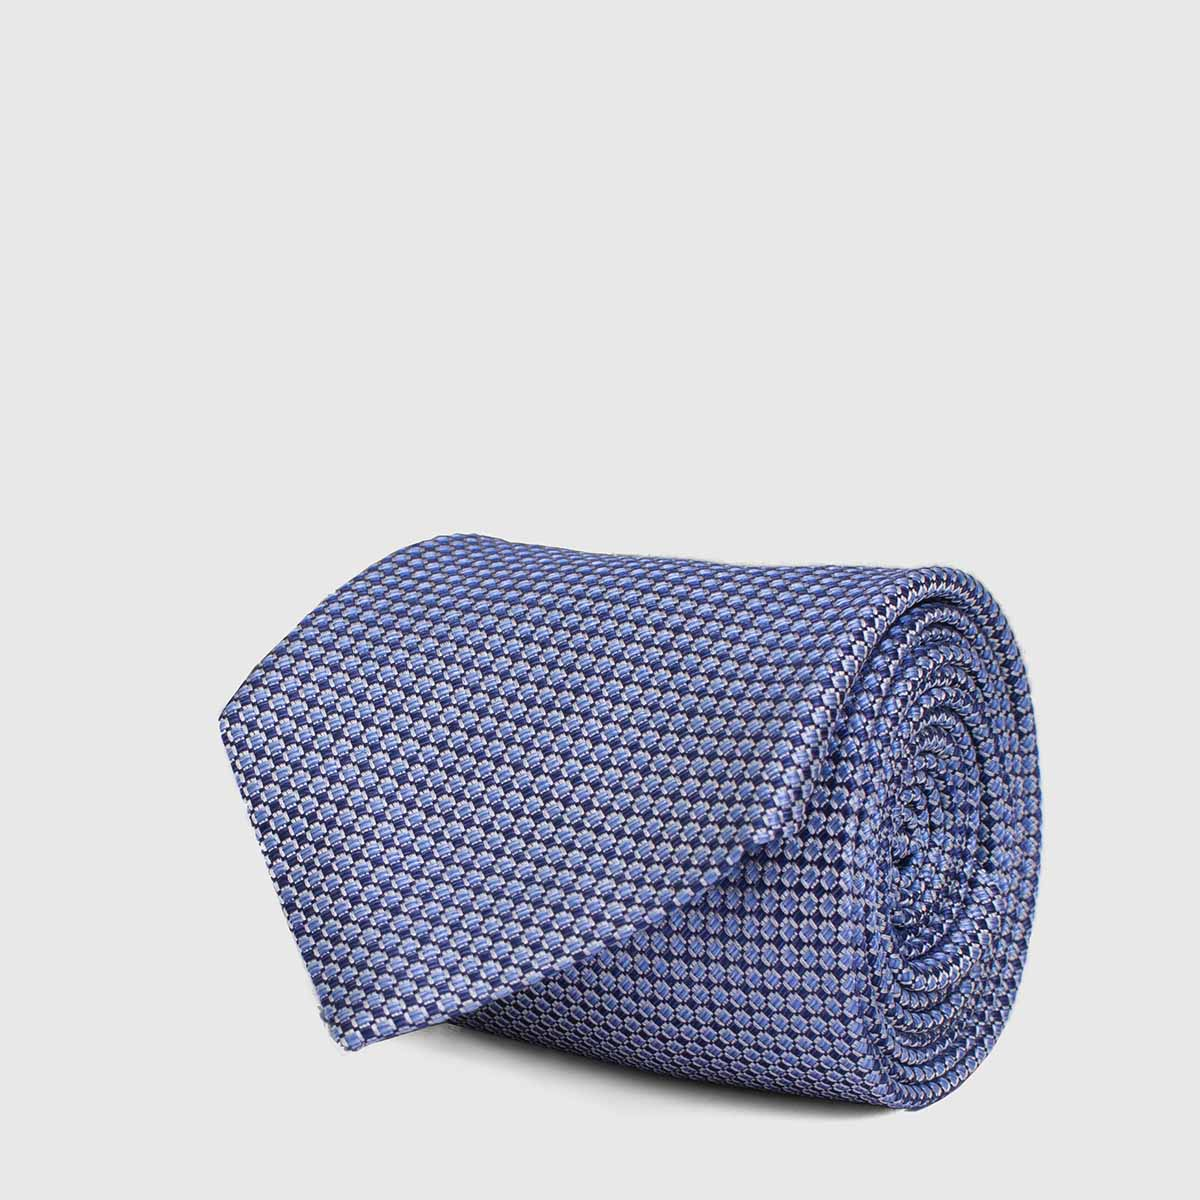 5-Folds tie in a Light Blue and White color